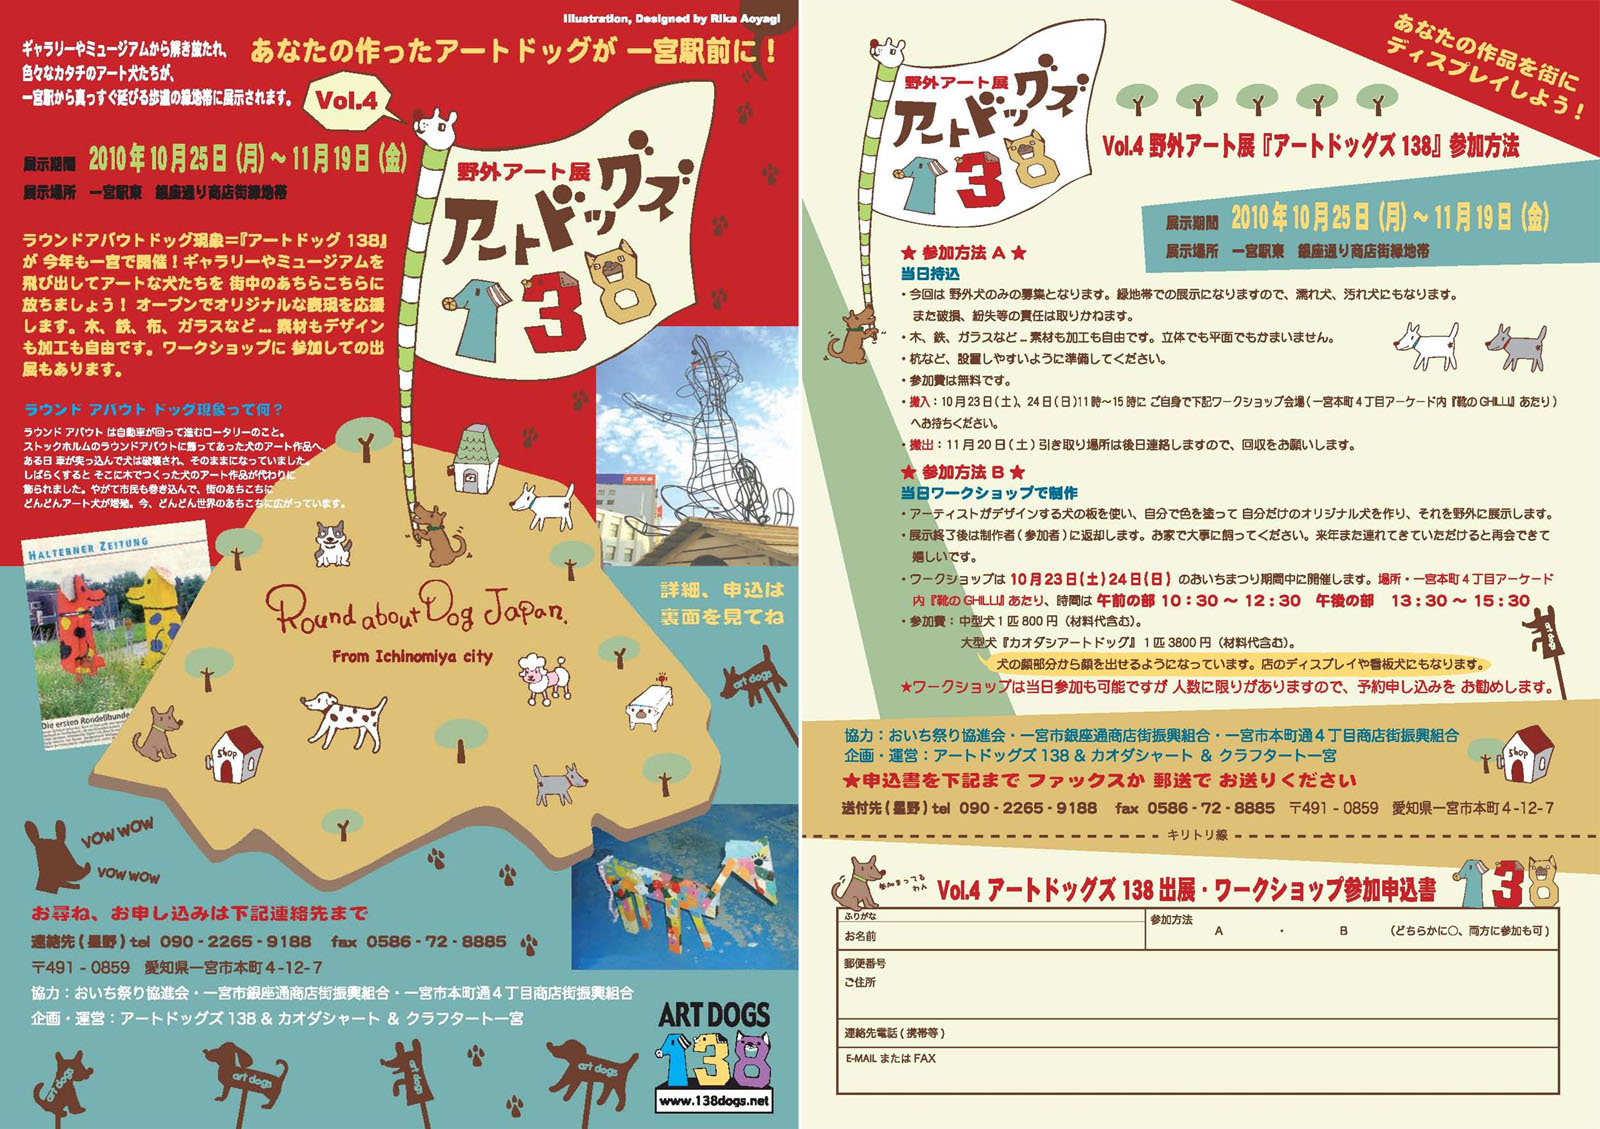 Out2010dogs_flyer_omote_ura_s_r